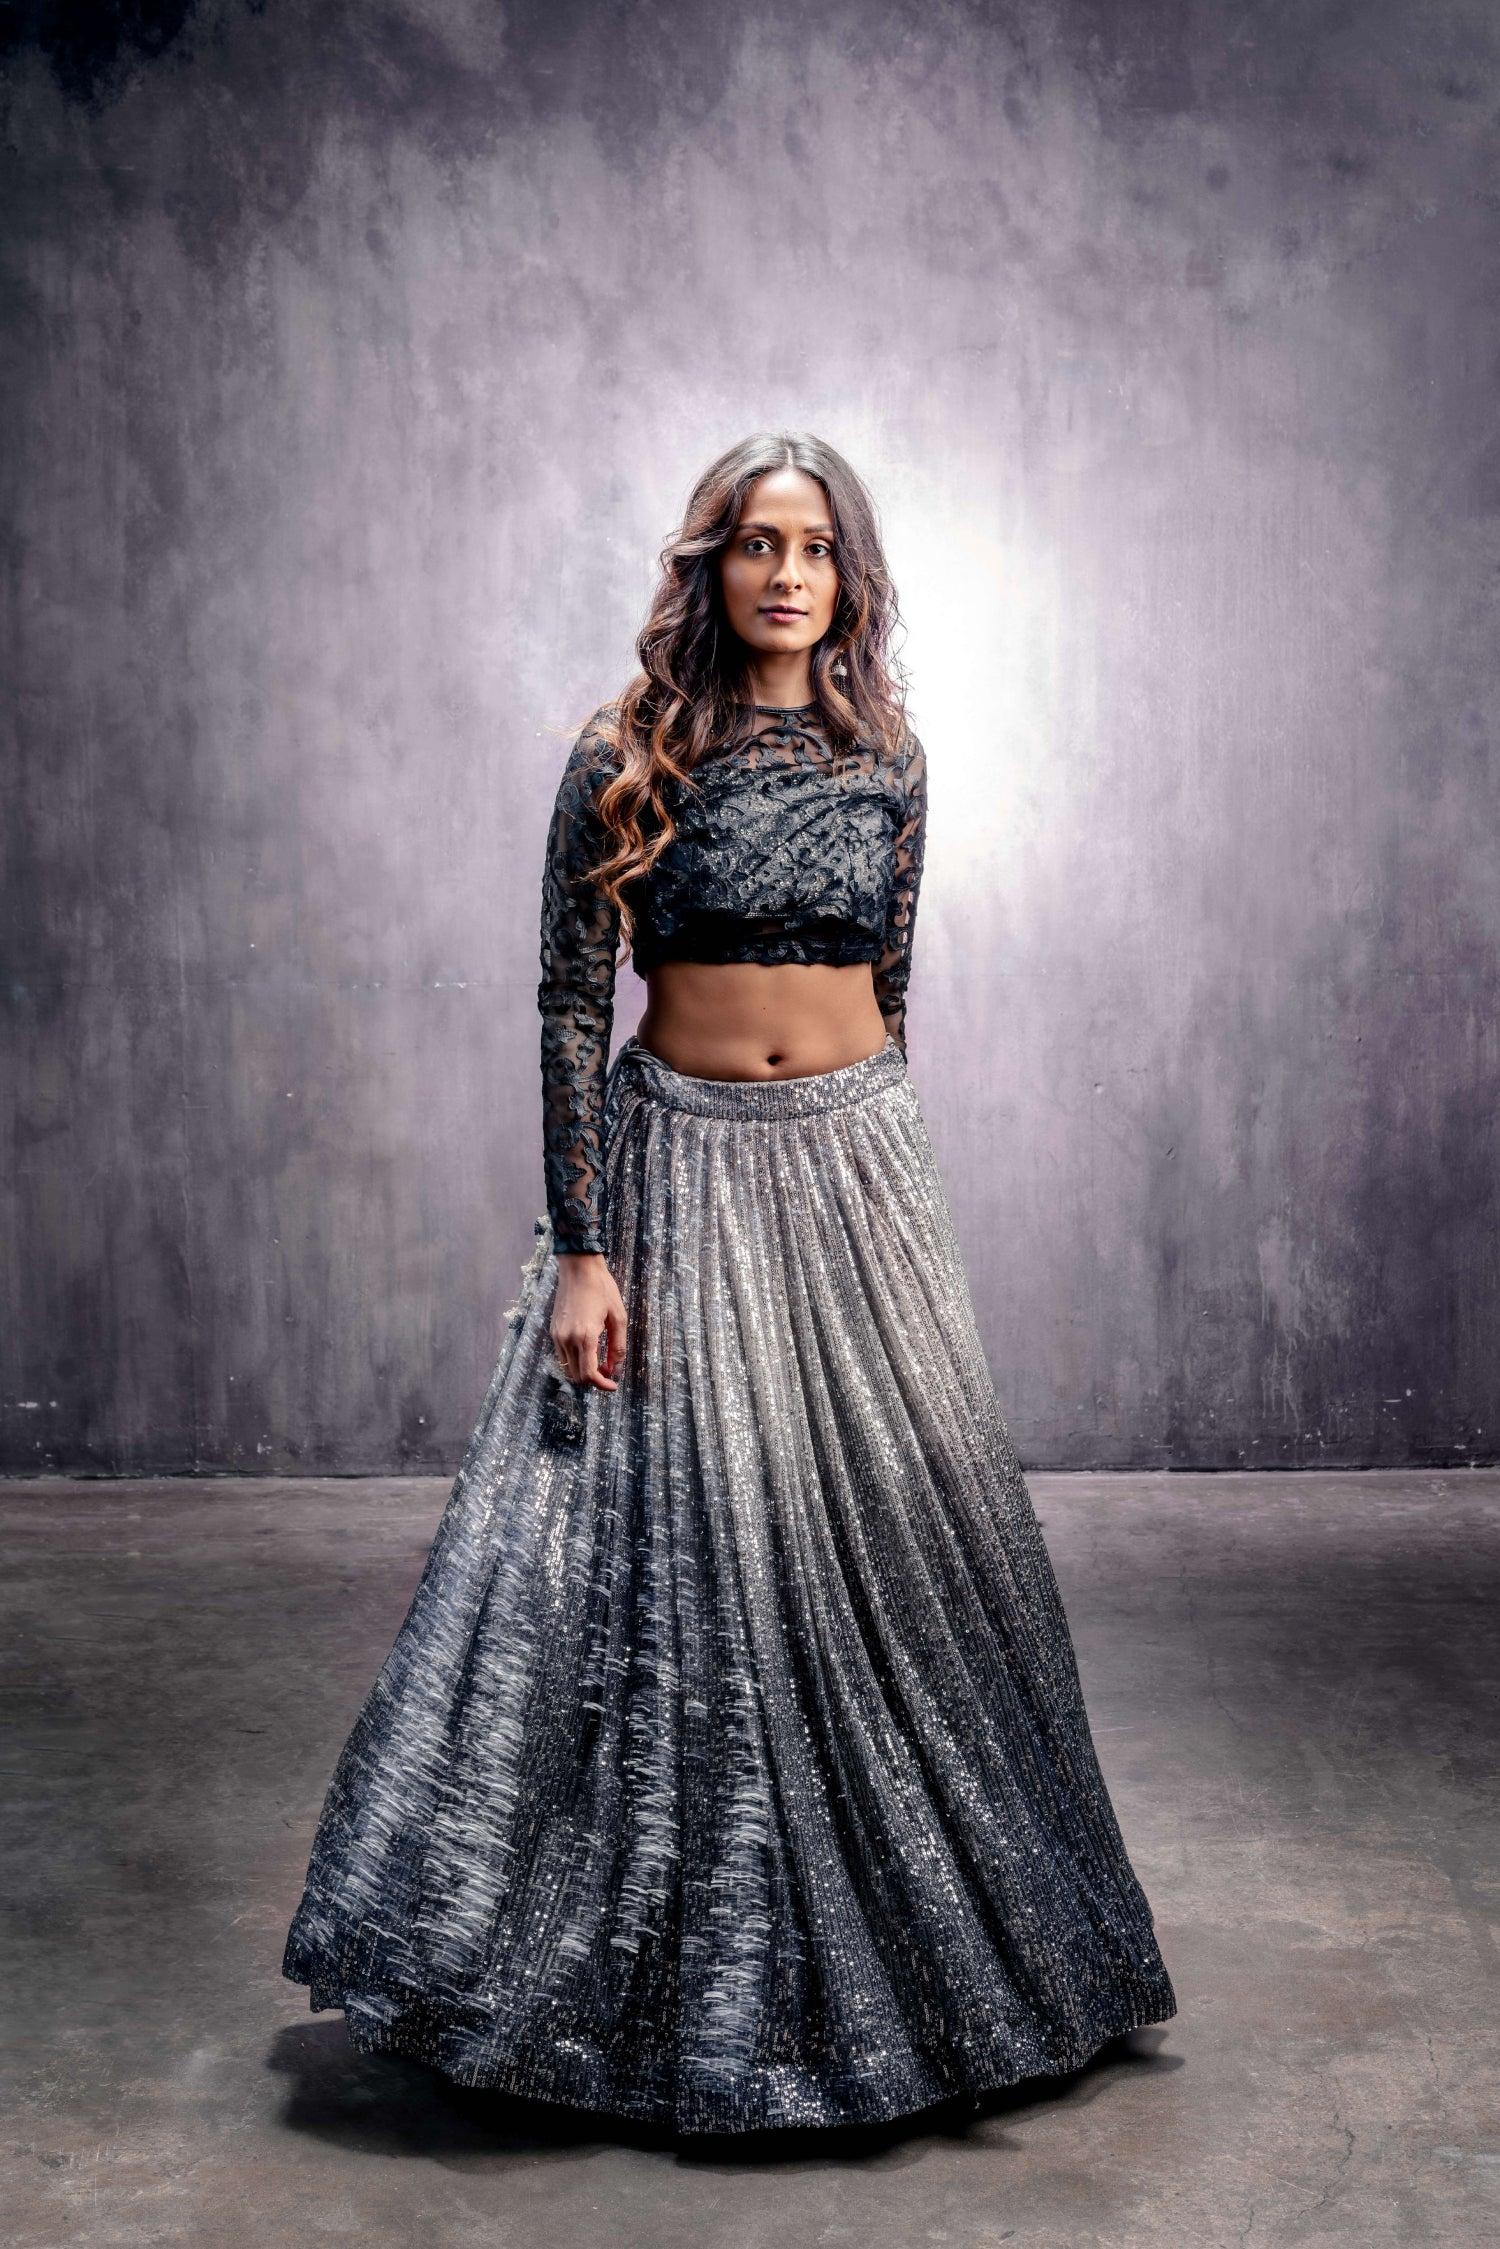 OMBRE SILVER/GRAY SEQUINED LEHENGA WITH BEADED BLOUSE OR BLACK LACE BLOUSE